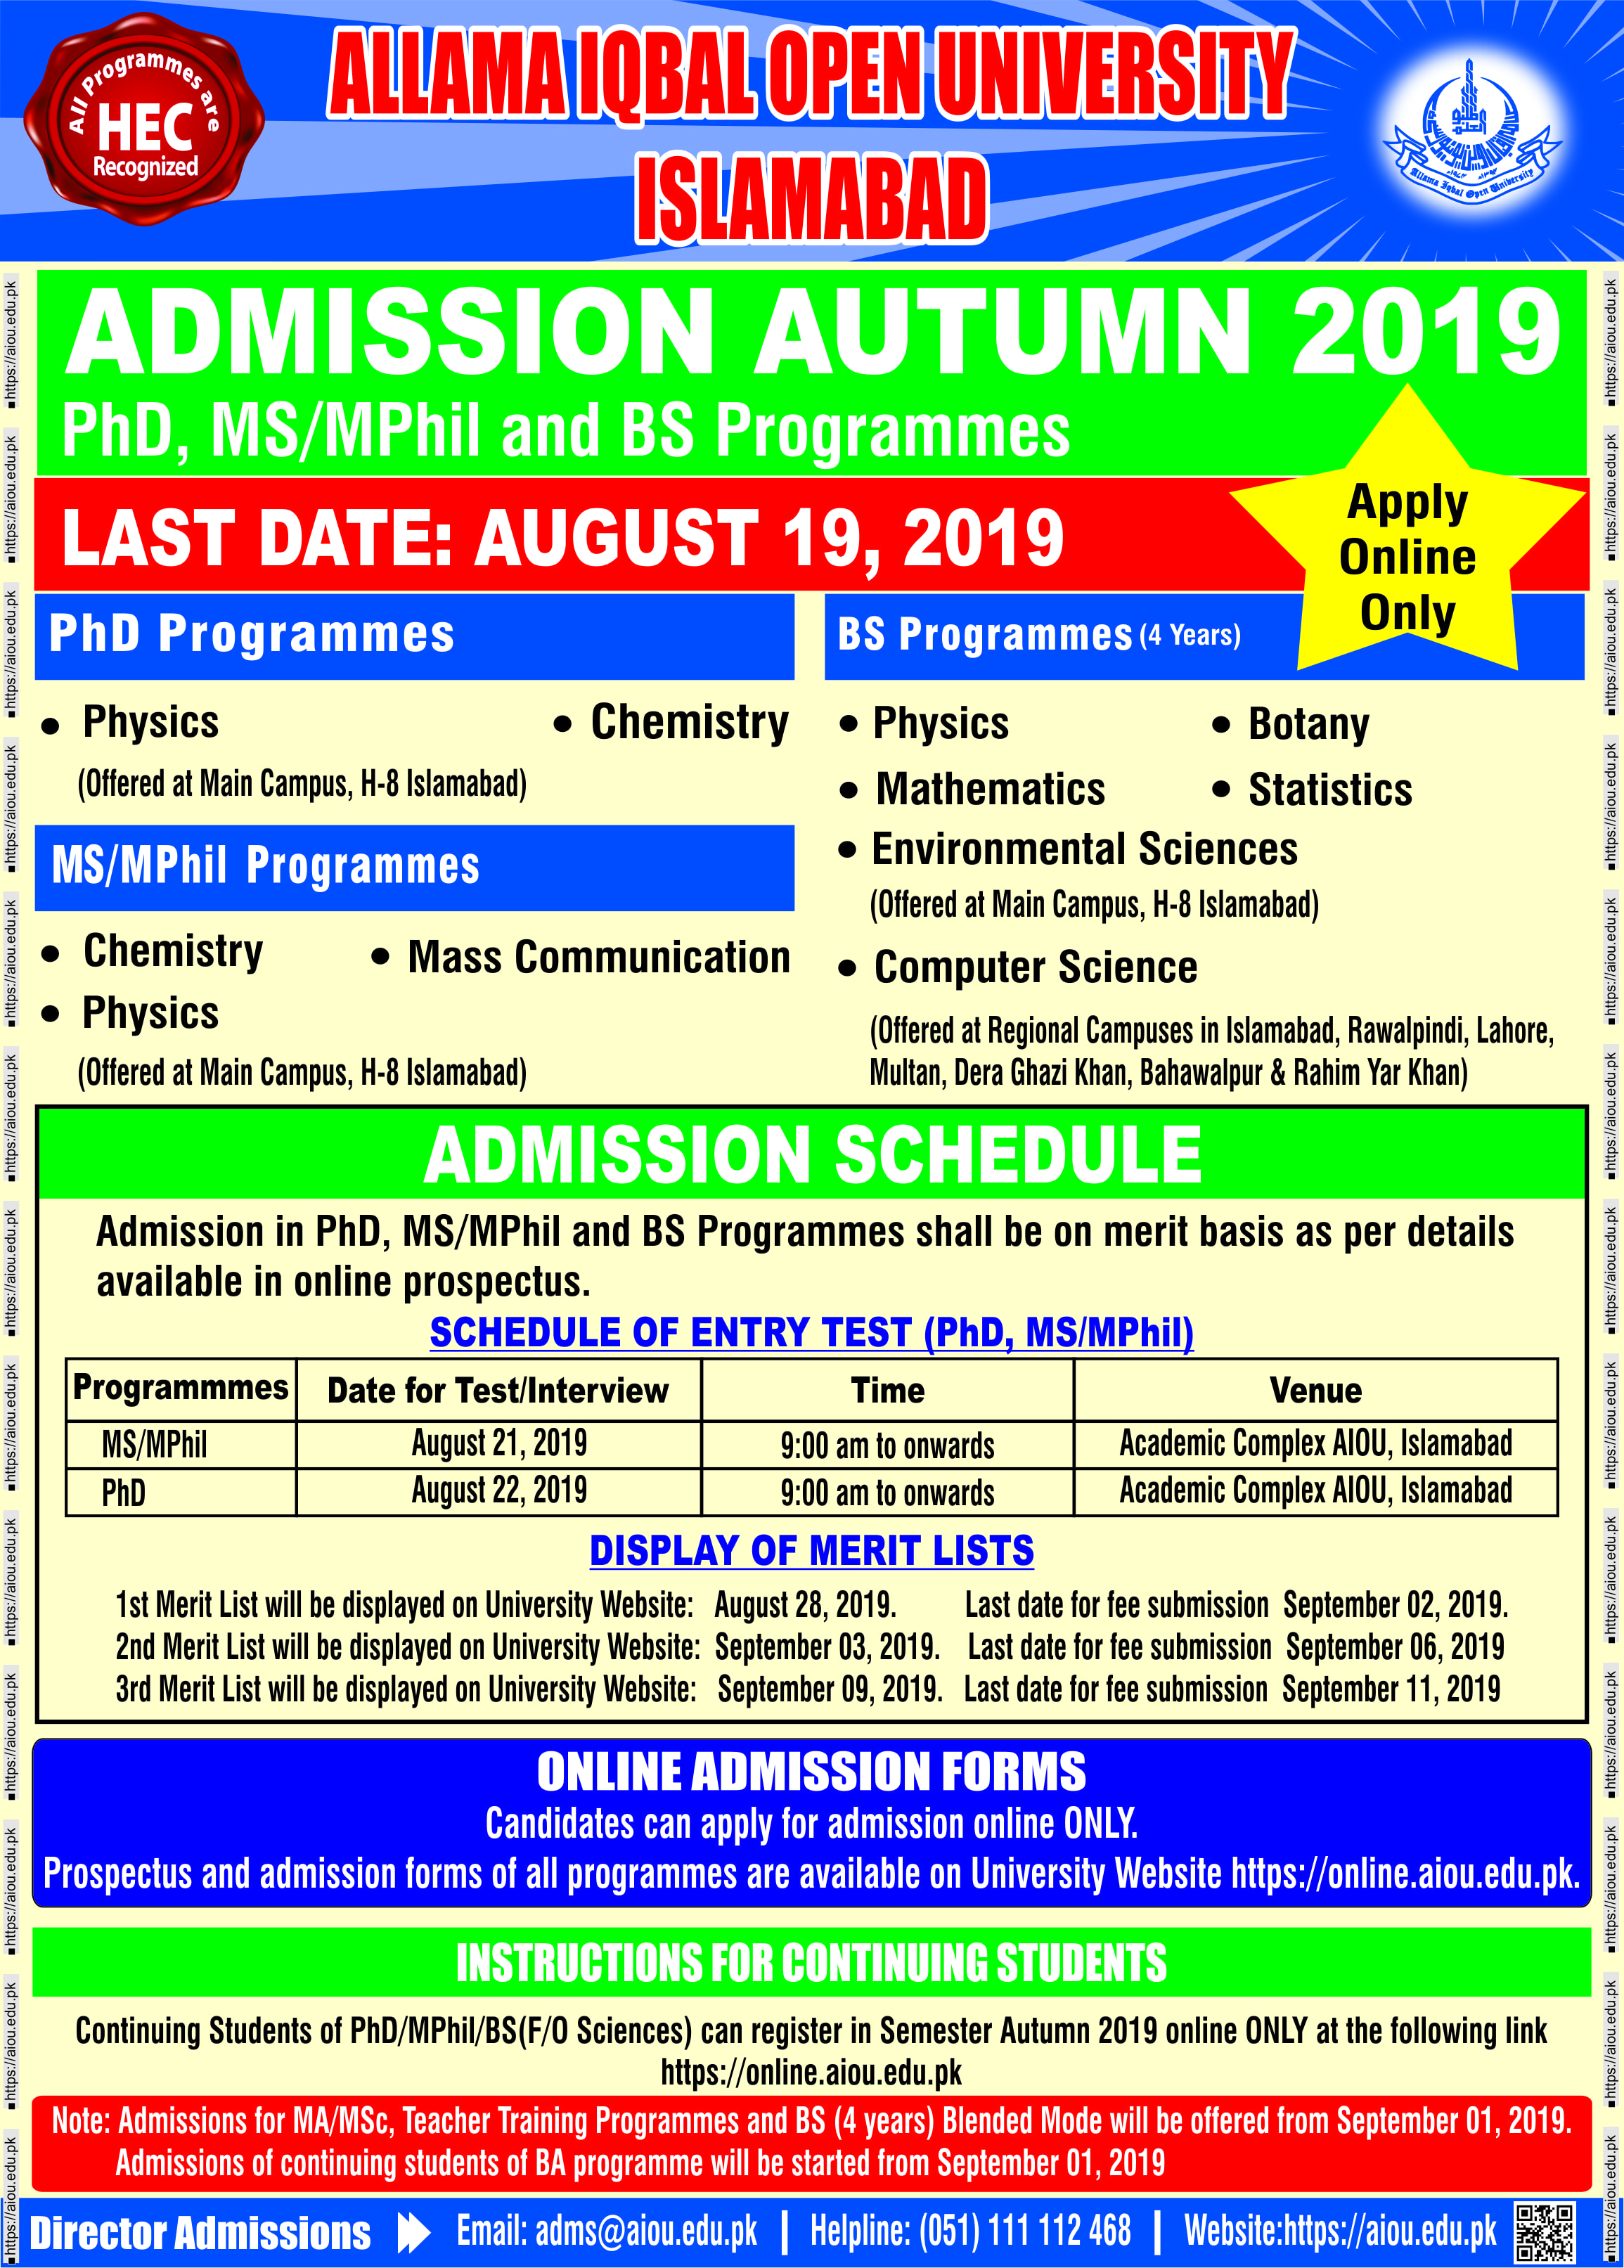 AIOU Admissions 2019, fee structure, merit lists online 2019 and apply online